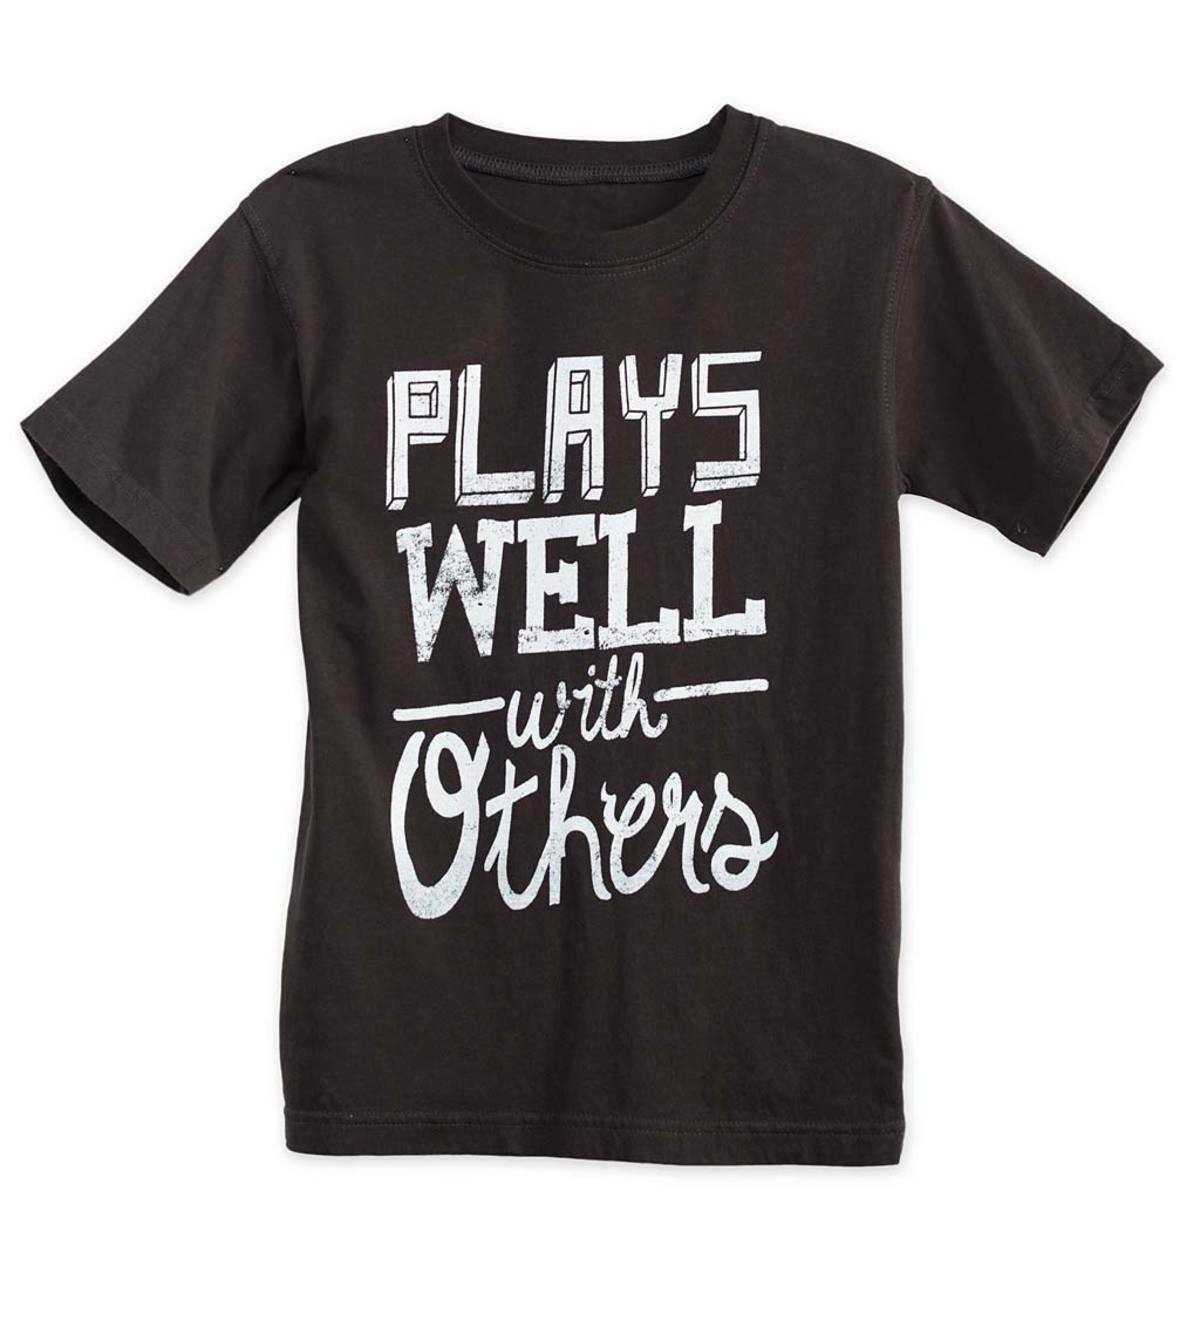 Plays Well With Others Tee - Gray - /12